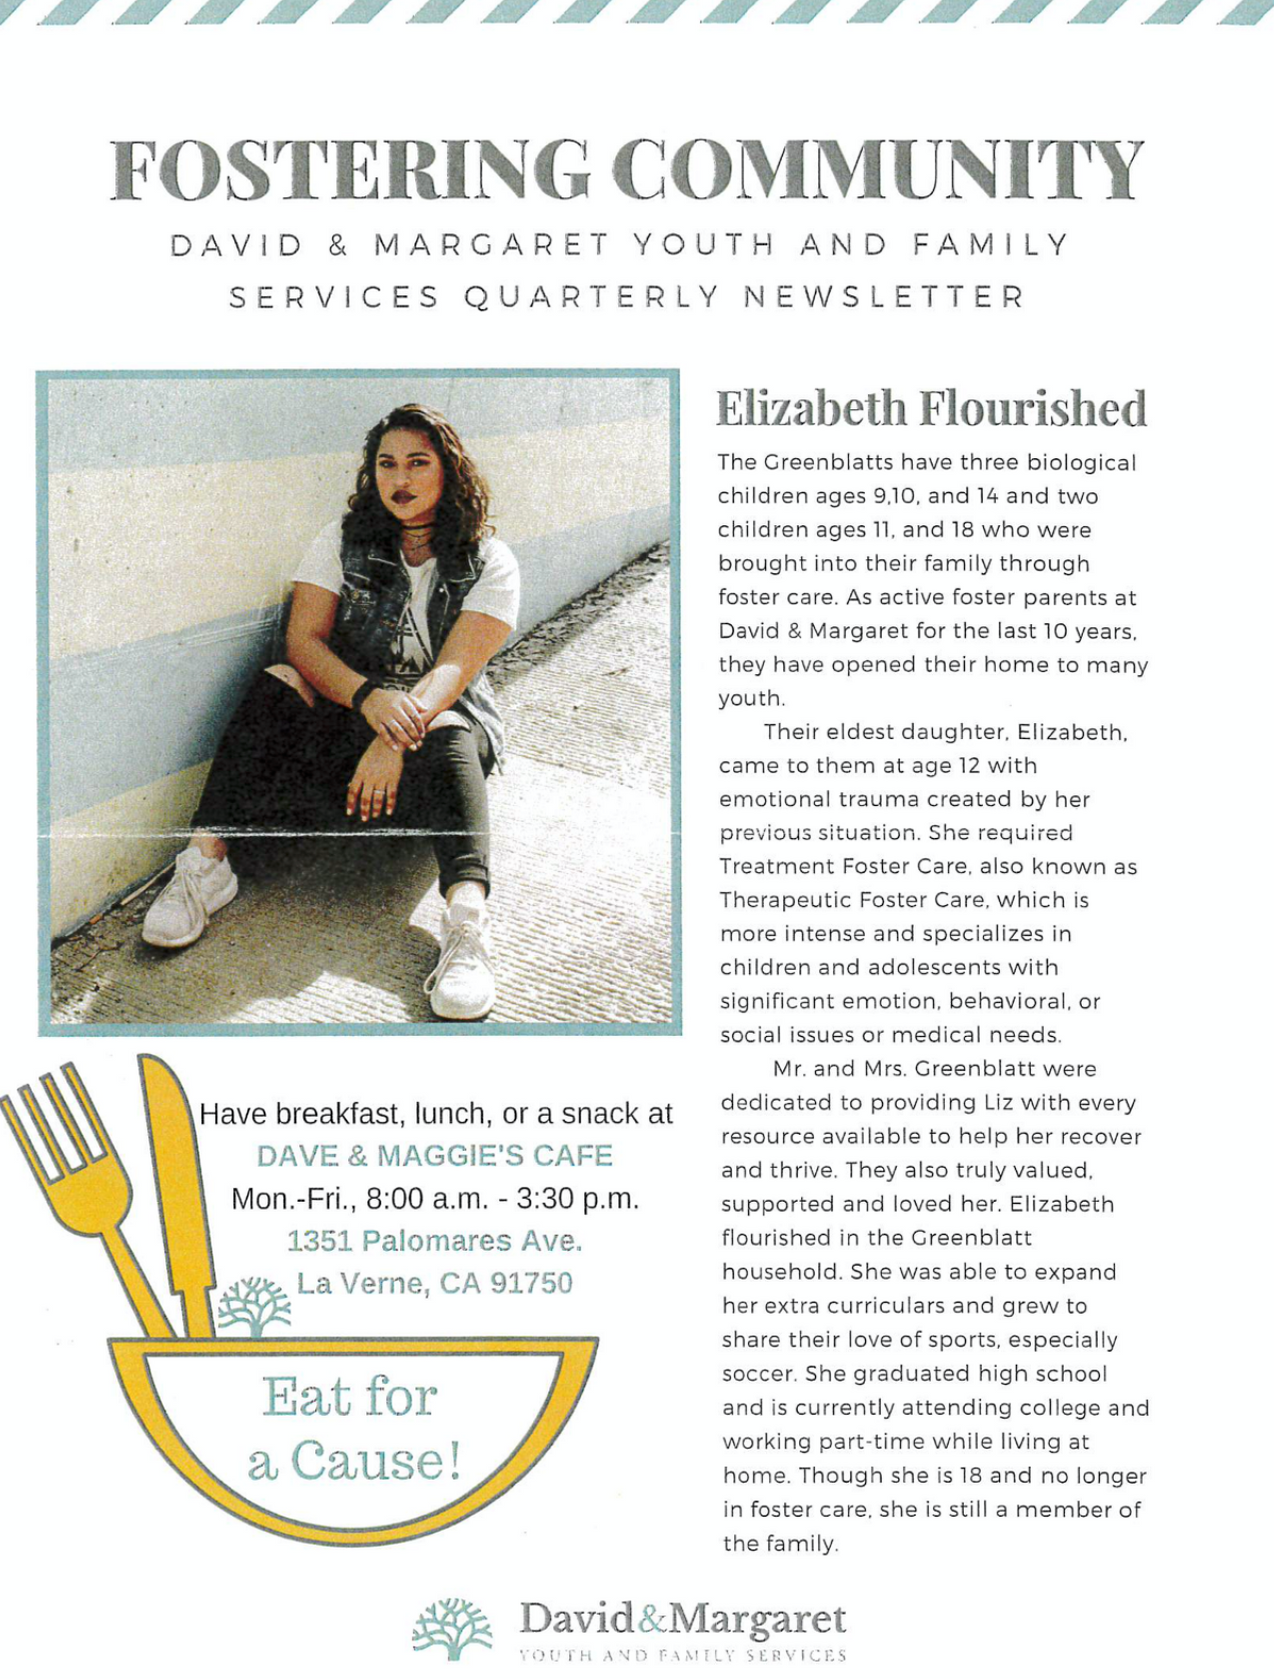 David & Margaret Quarterly Newsletter Vol. 1 Issue 1